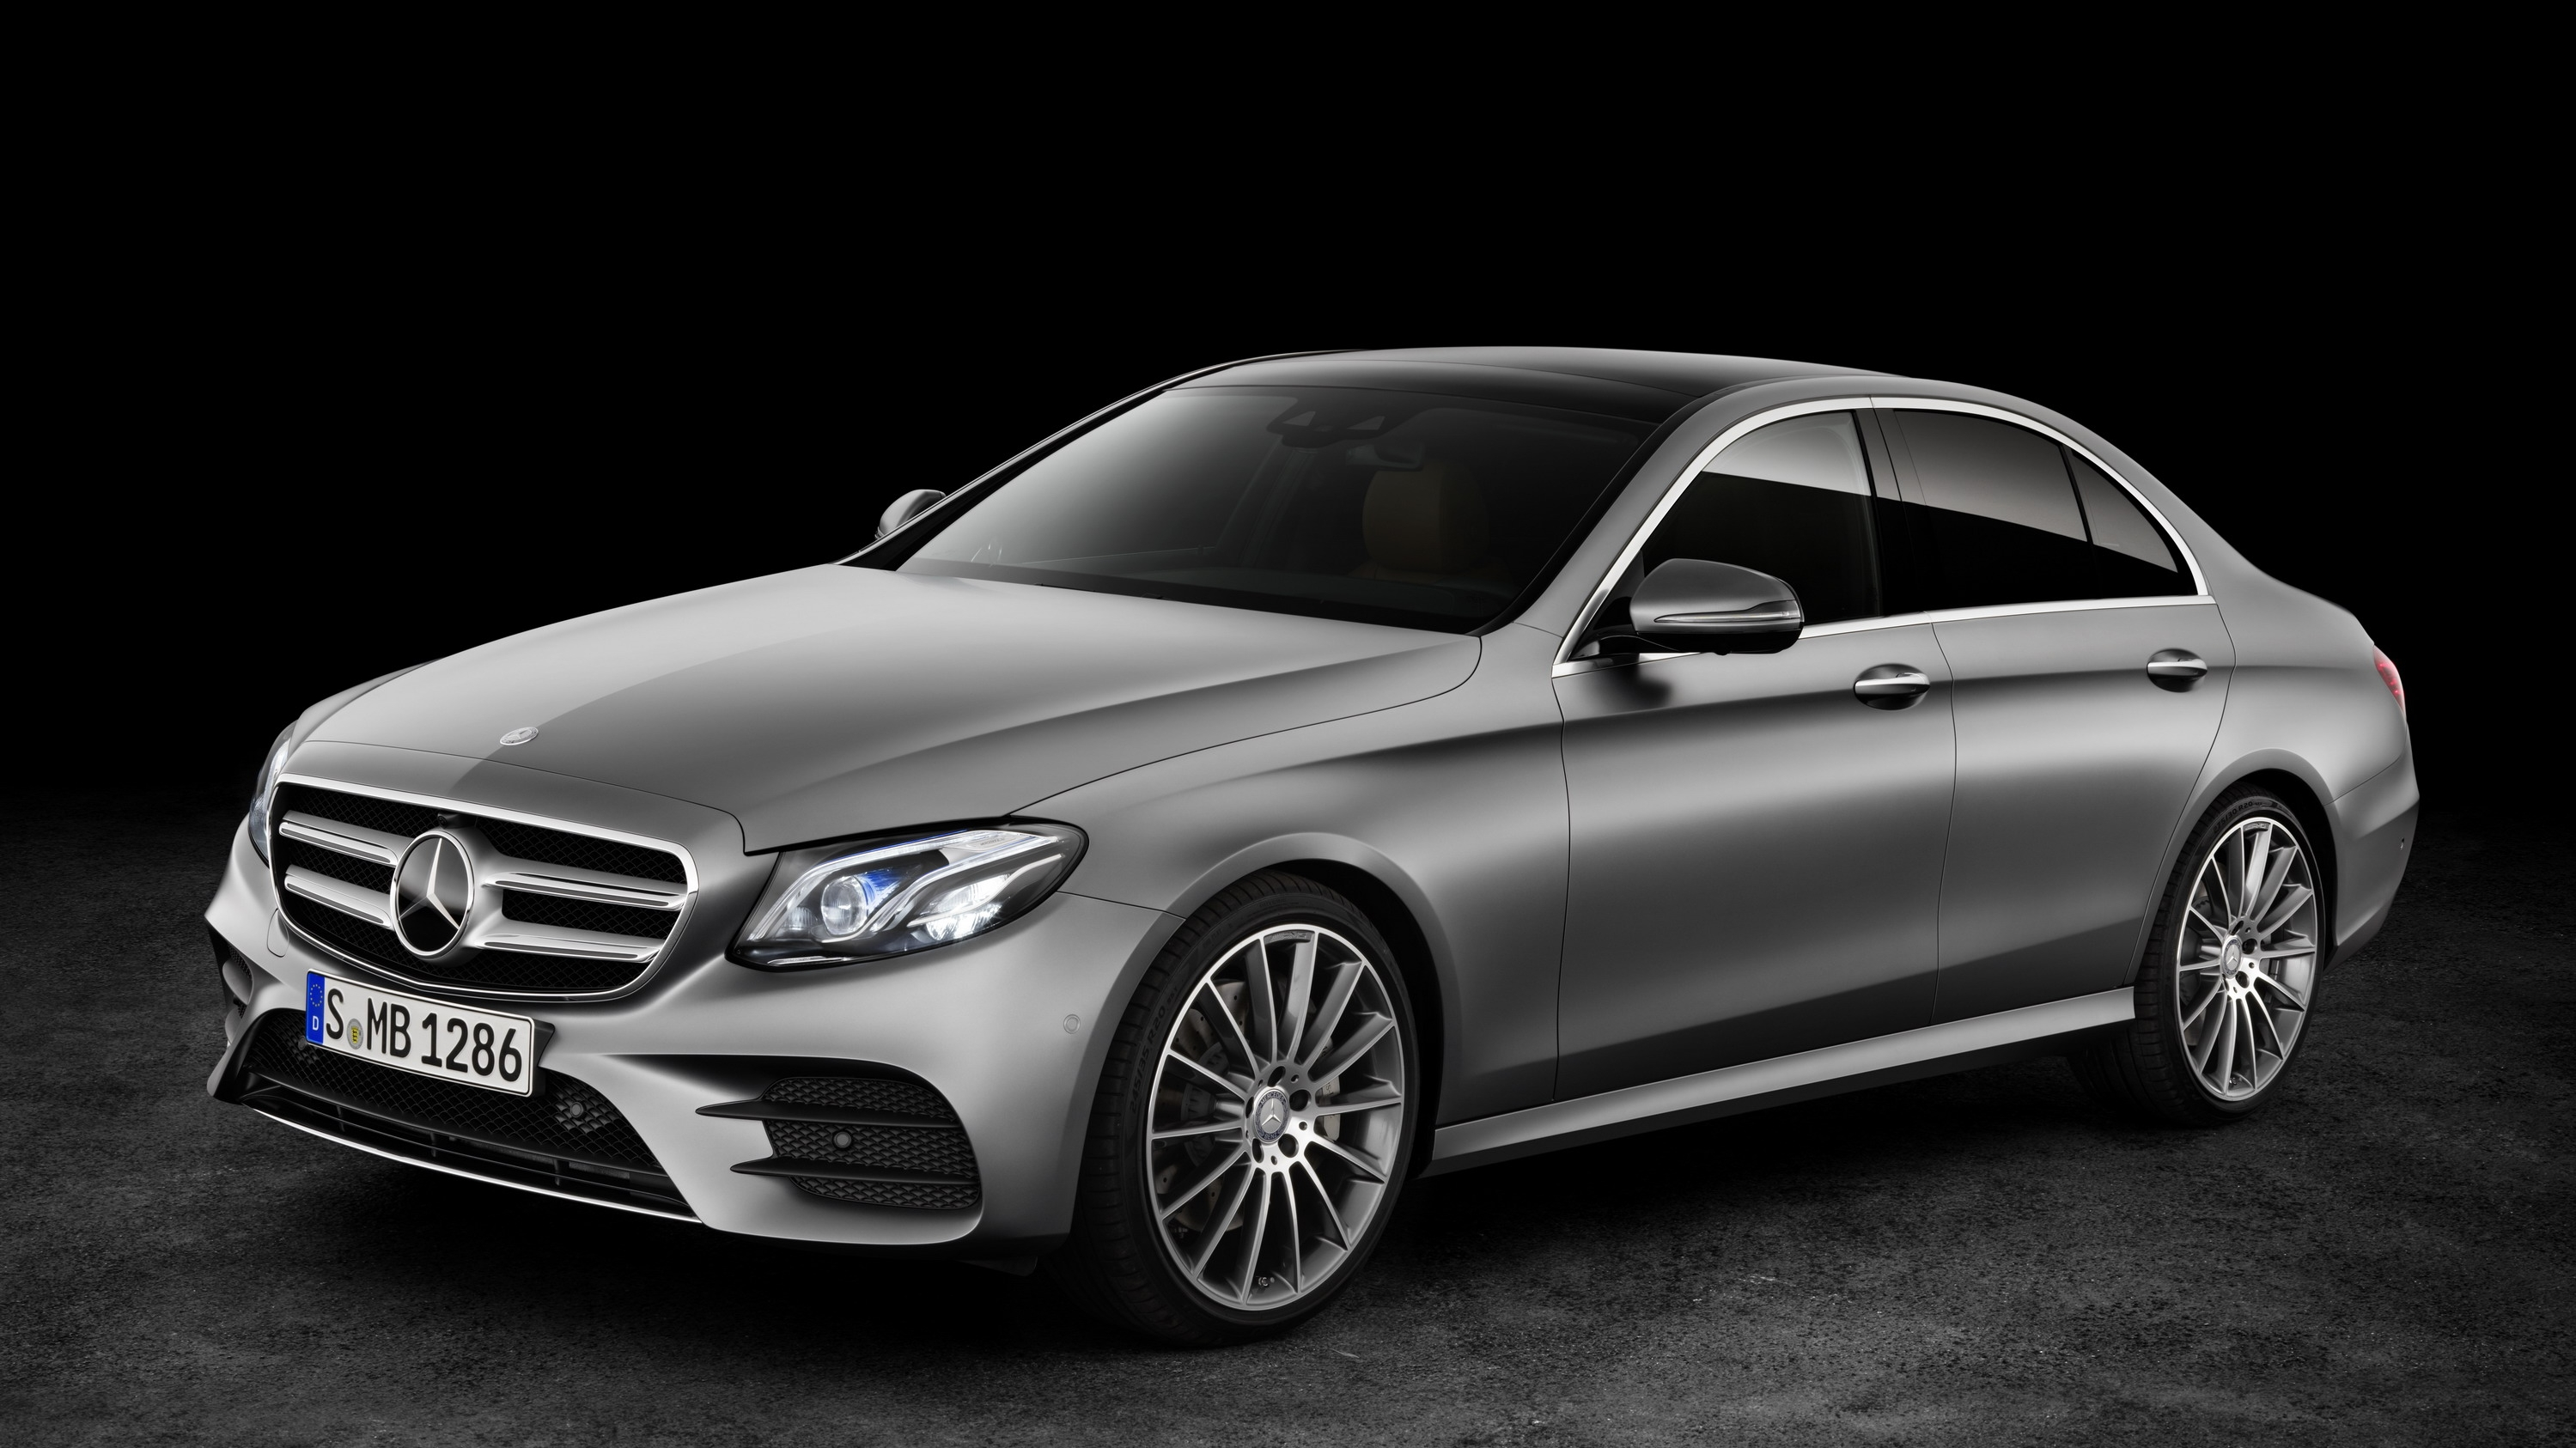 class benz how en much amg mbcan mercedes type hero is sedan c a vehicles dr